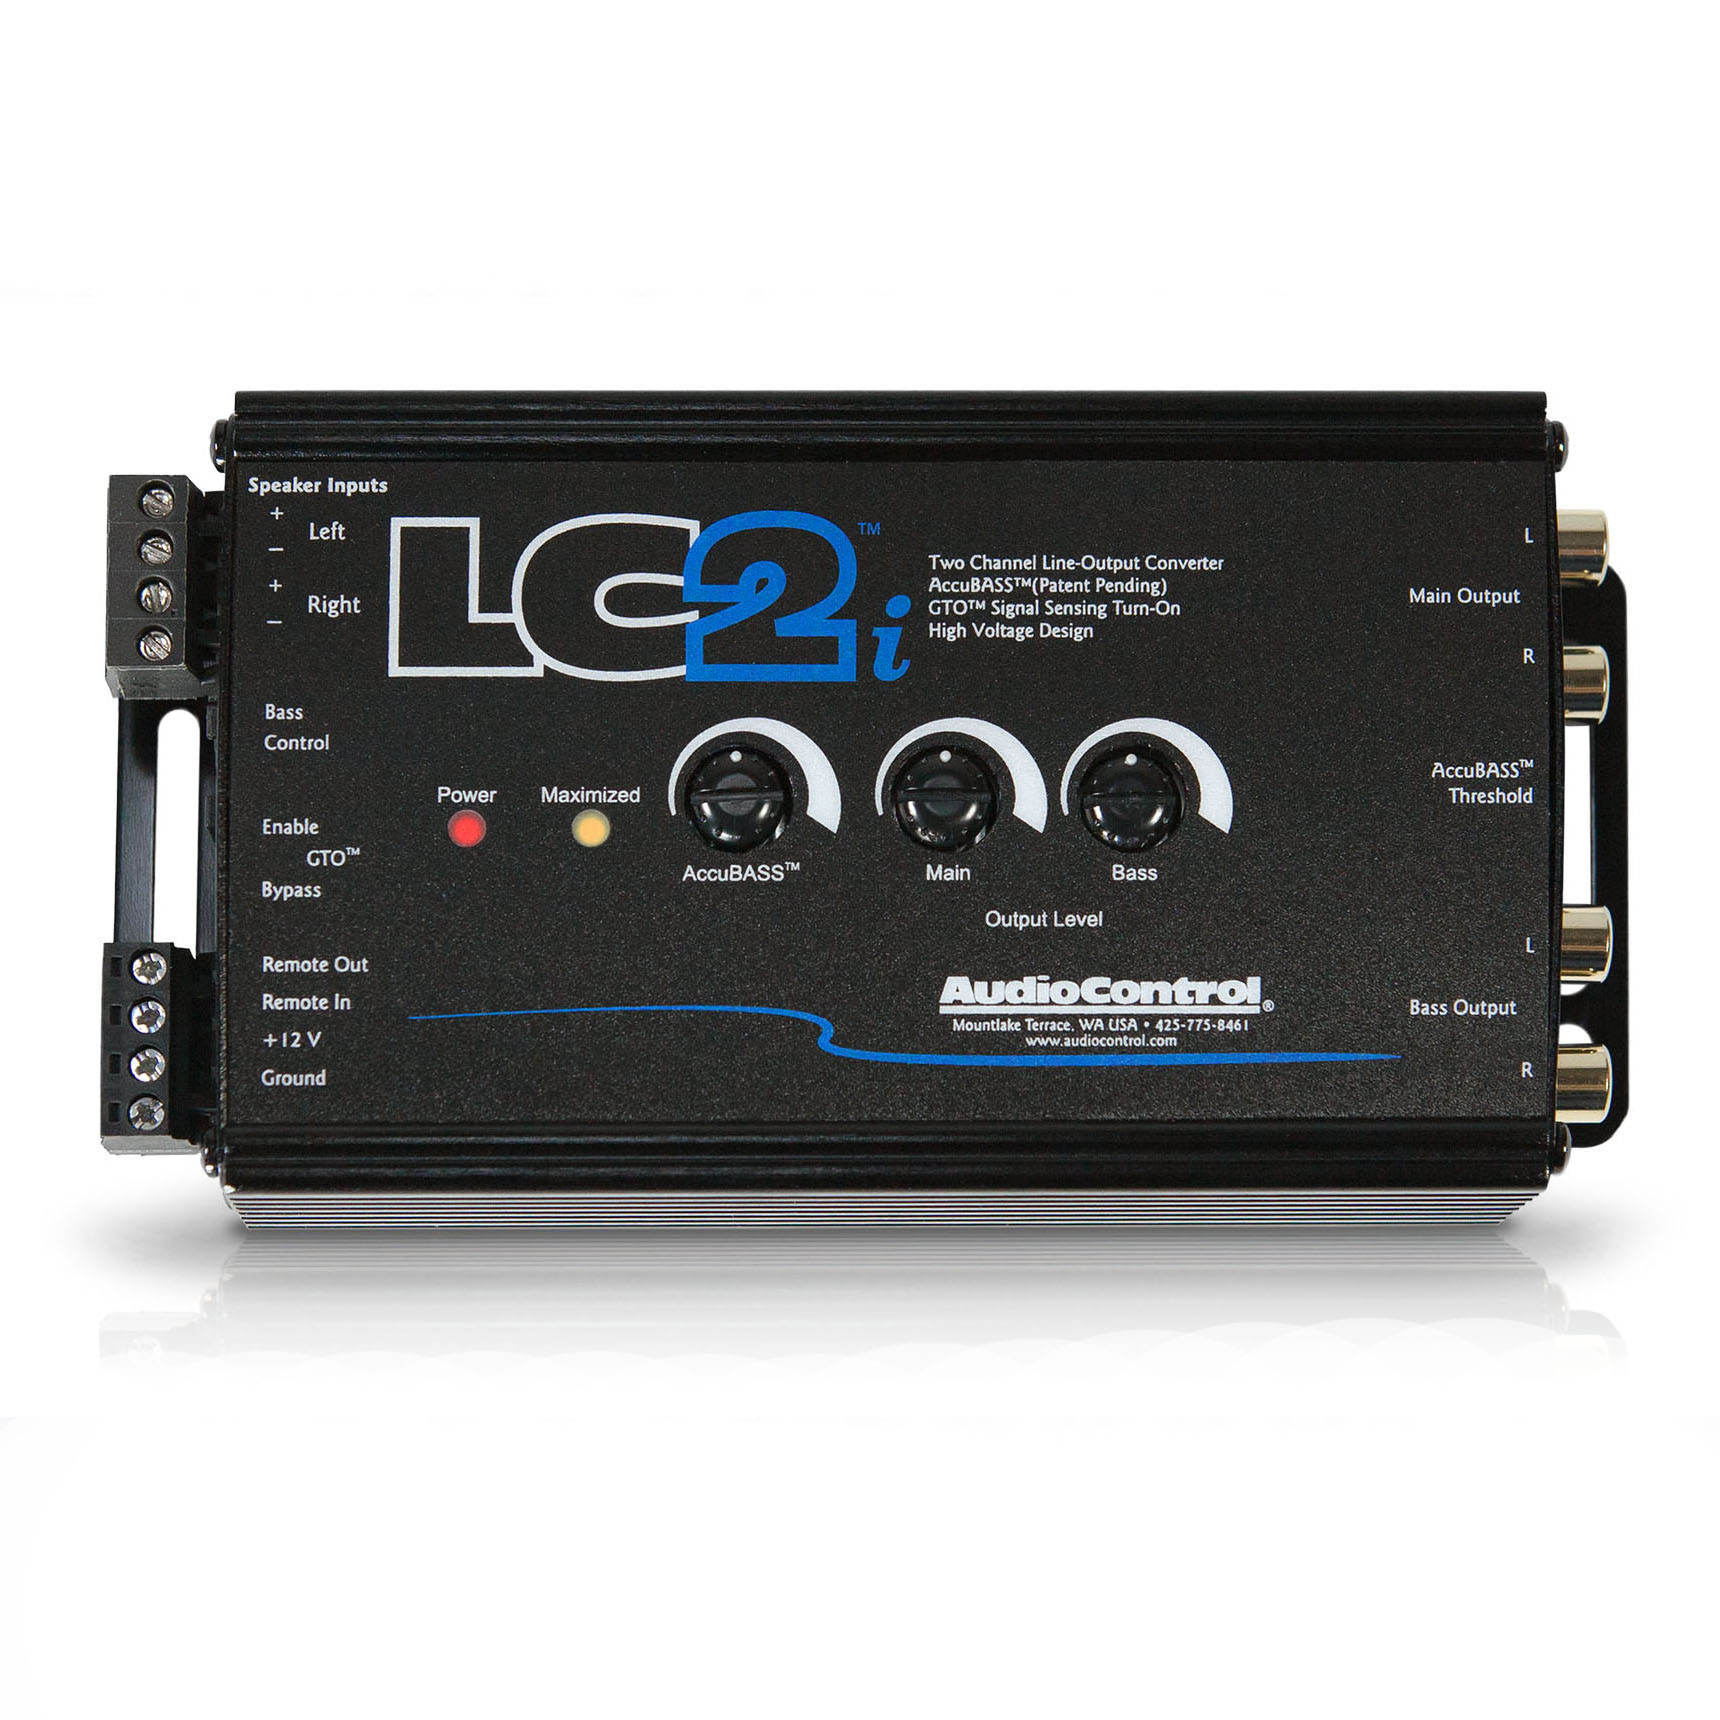 AudioControl LC2i 2 channel Line Out Converter with Accubass